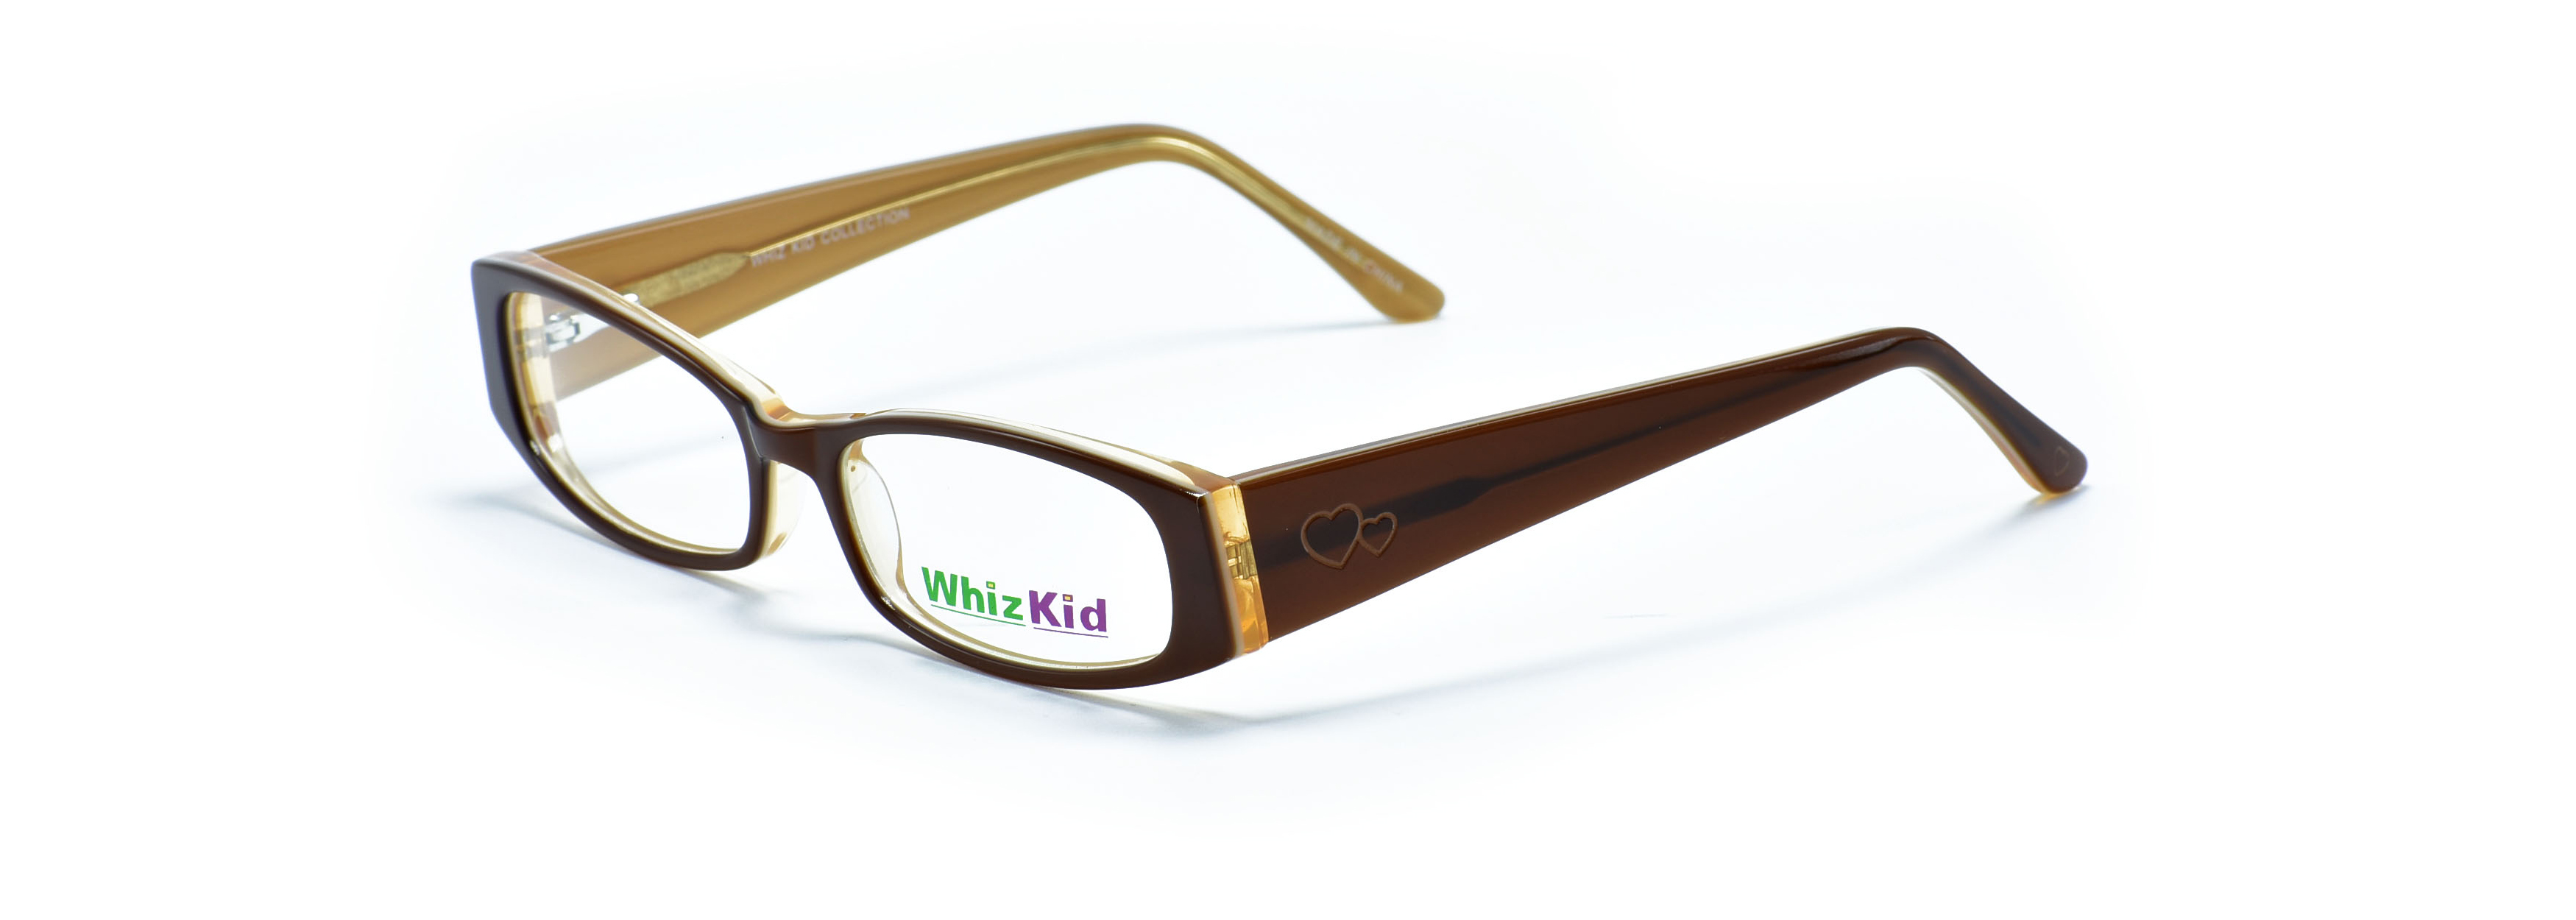 WHIZ KID 39 BROWN 4716